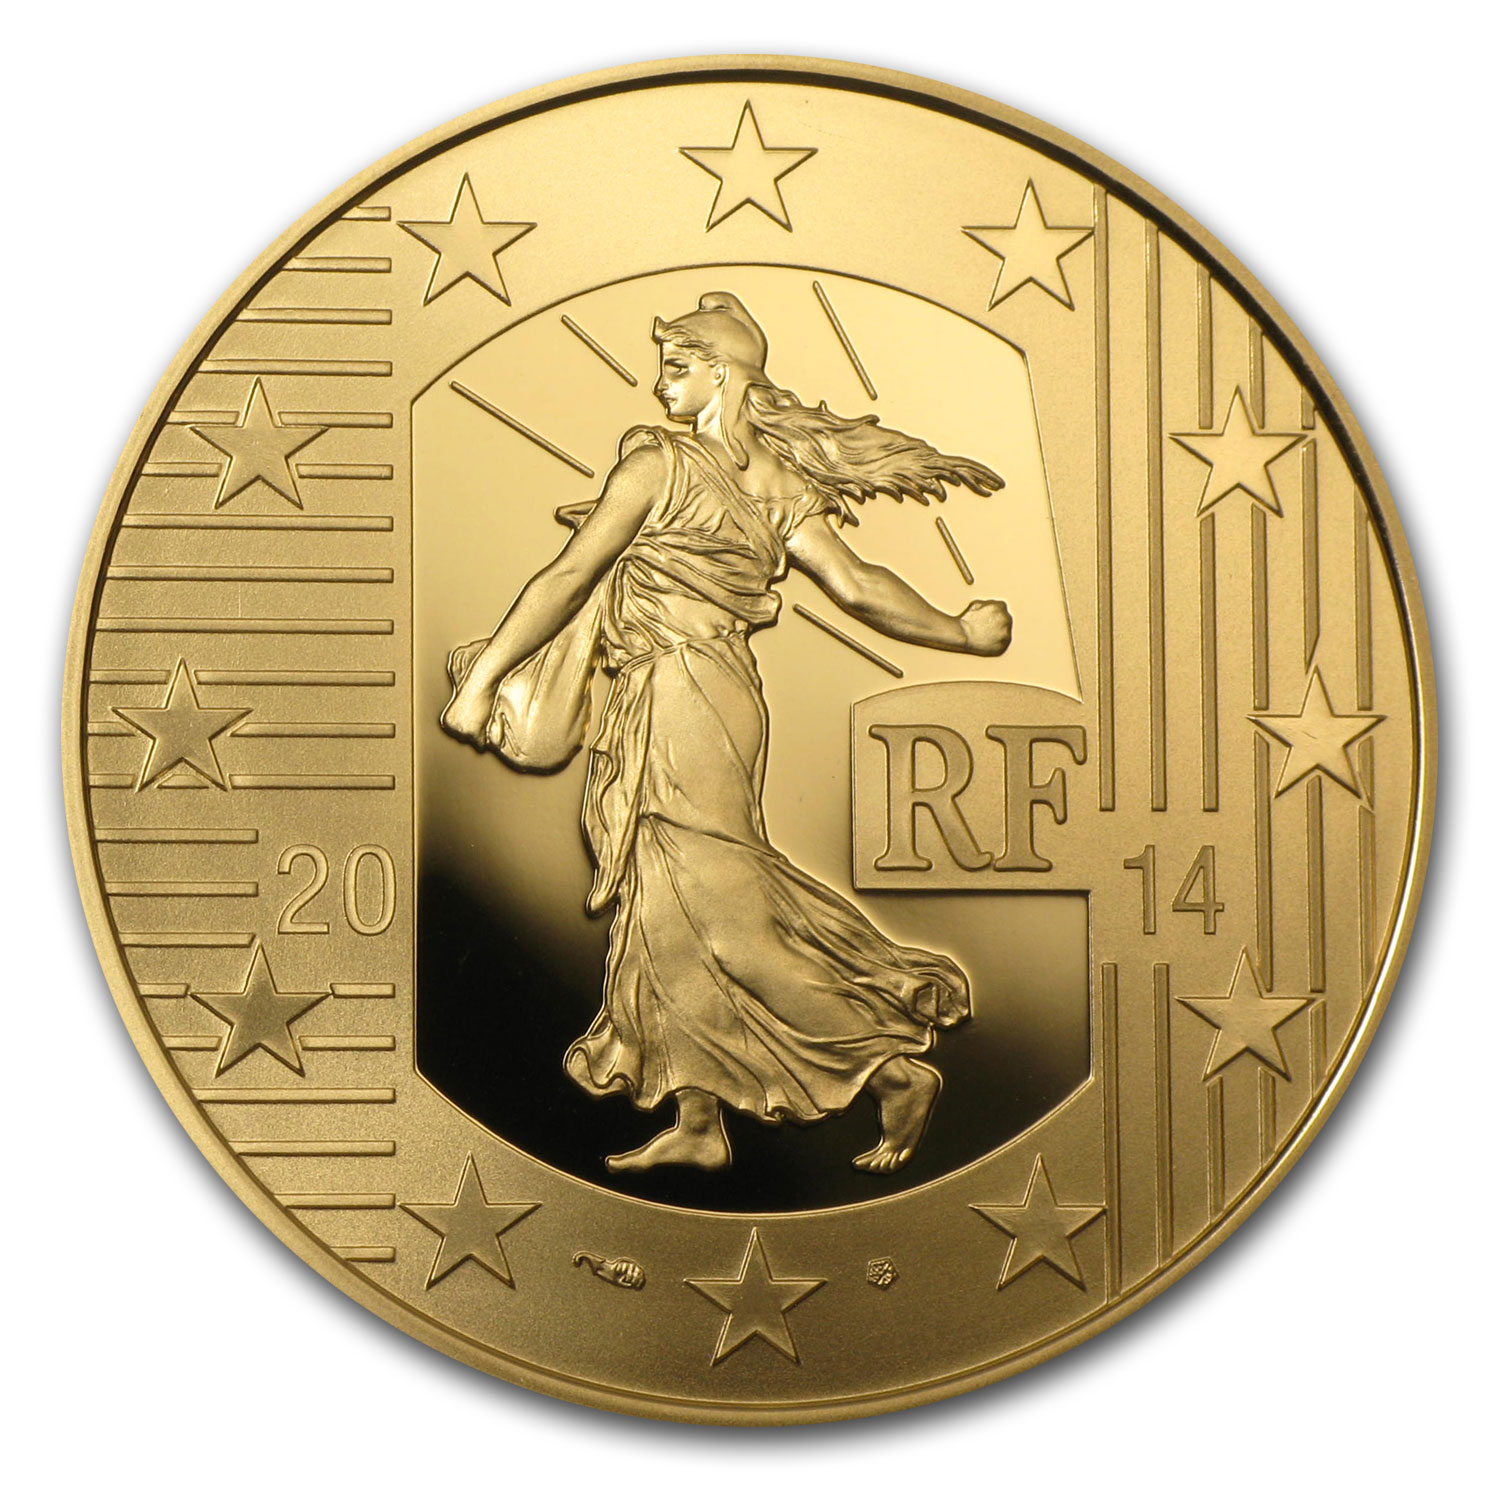 2014 1/2 oz Gold Proof The Sower - The Denier of Charles the Bald